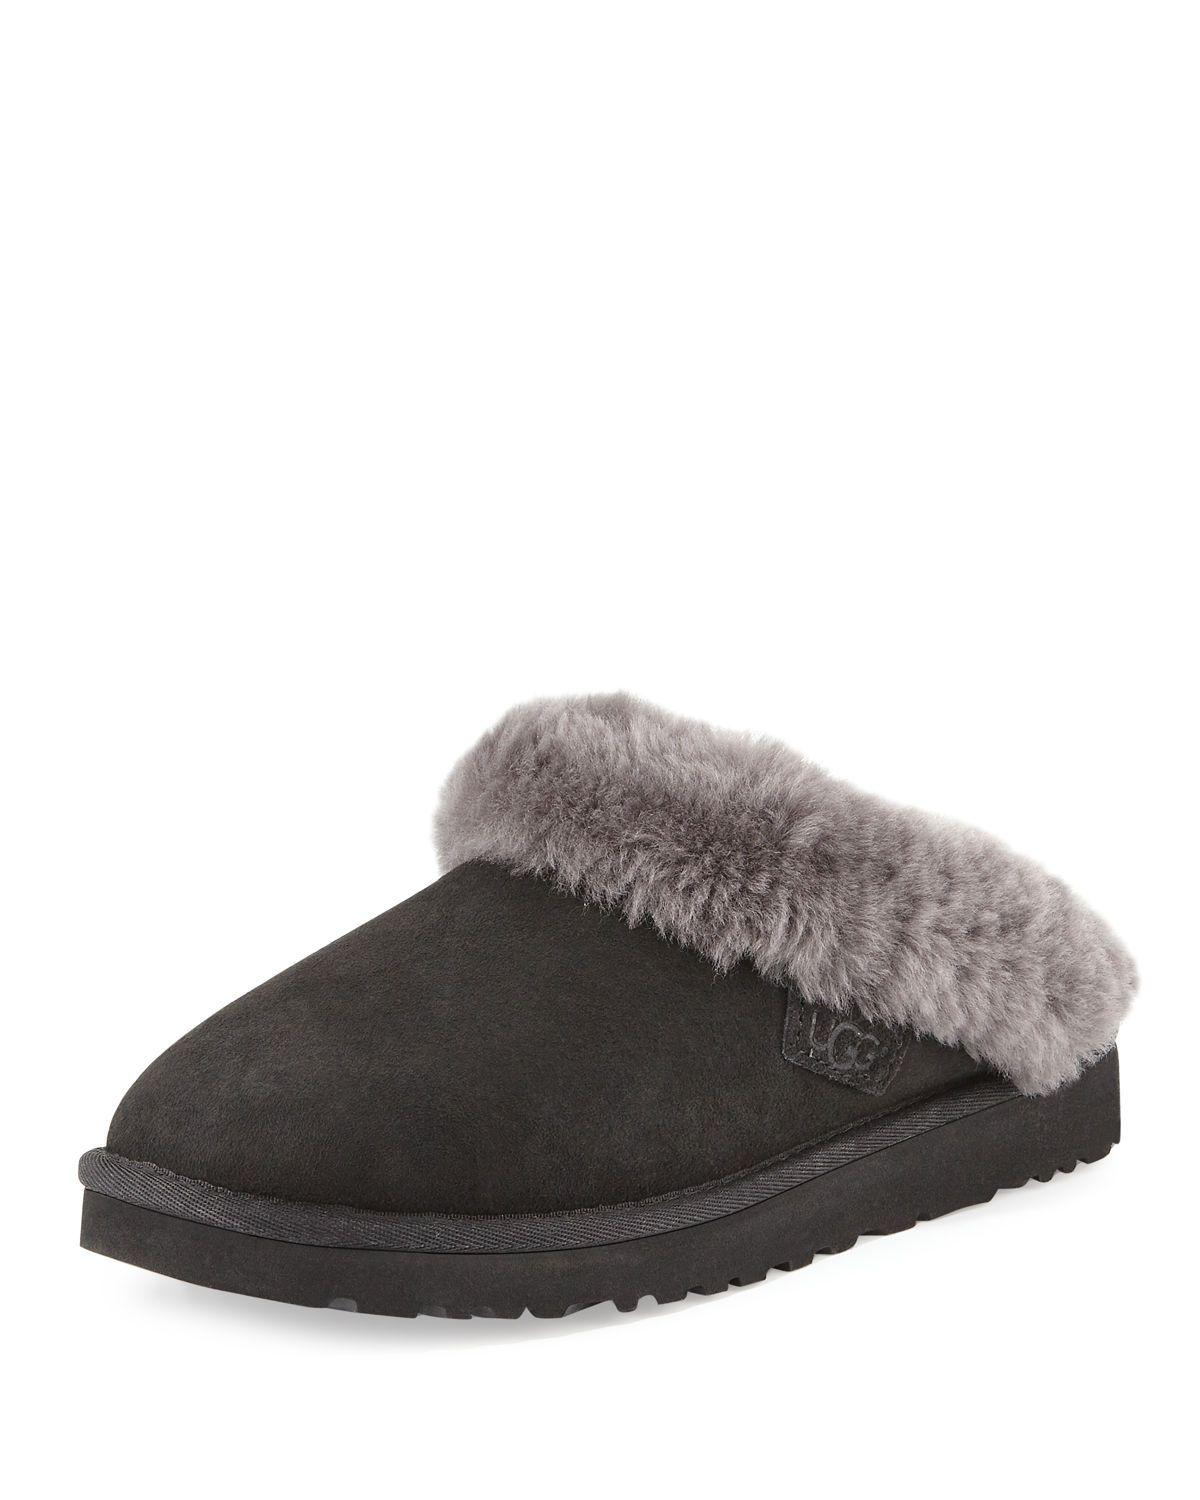 08eaf3d85b2 UGG Cluggette Shearling Slide Slippers | That's cute | Ugg cluggette ...